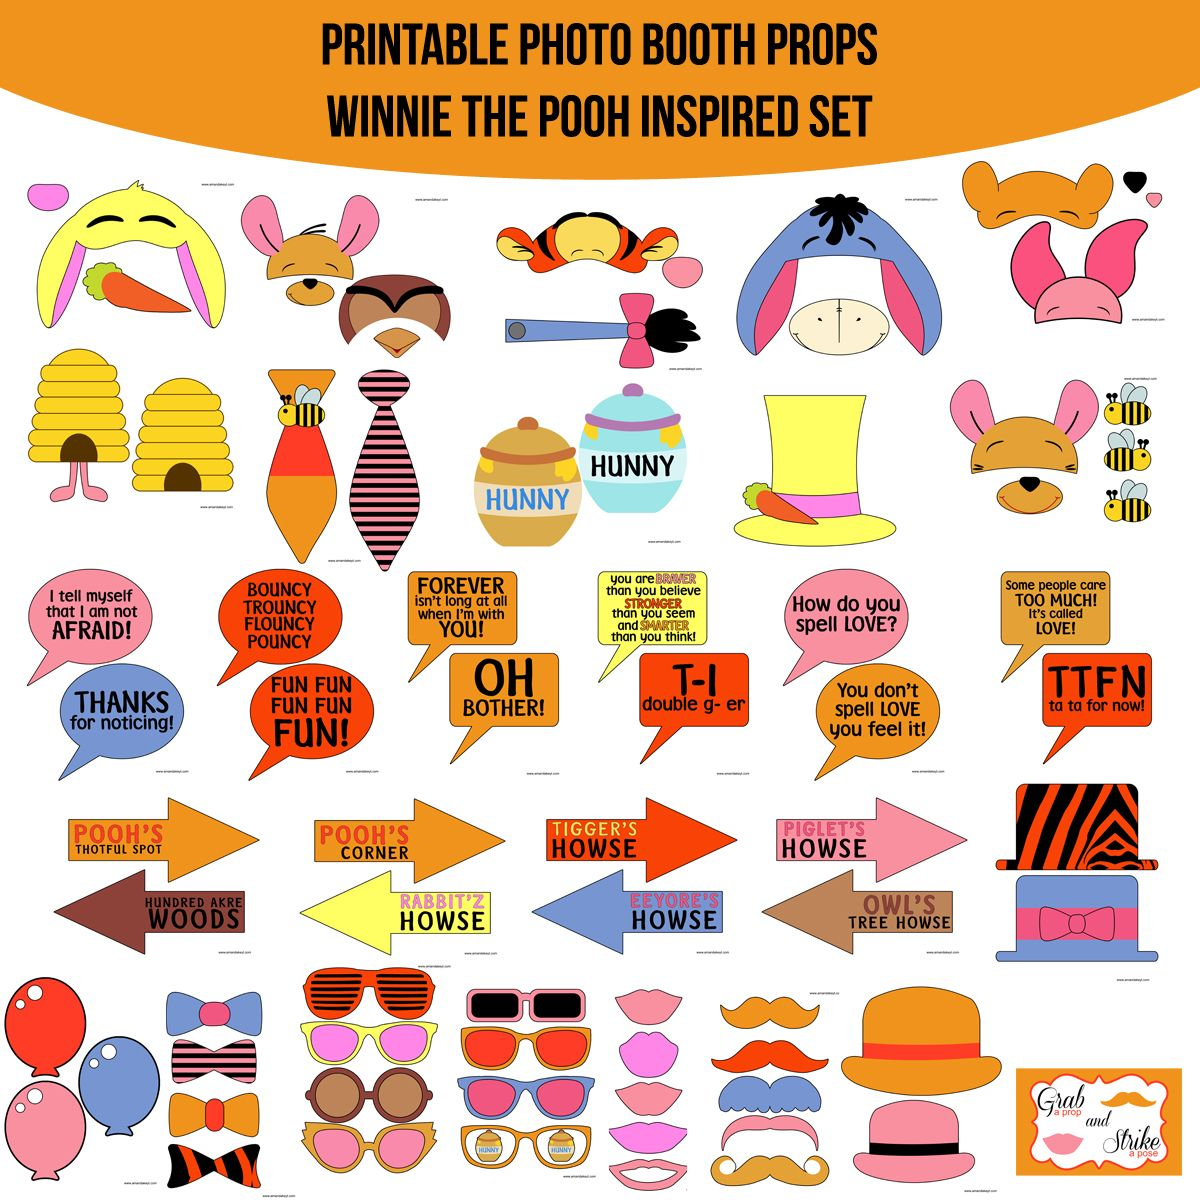 Instant download winnie the pooh inspired printable photo booth instant download winnie the pooh inspired printable photo booth prop set amanda keyt diy photo voltagebd Gallery